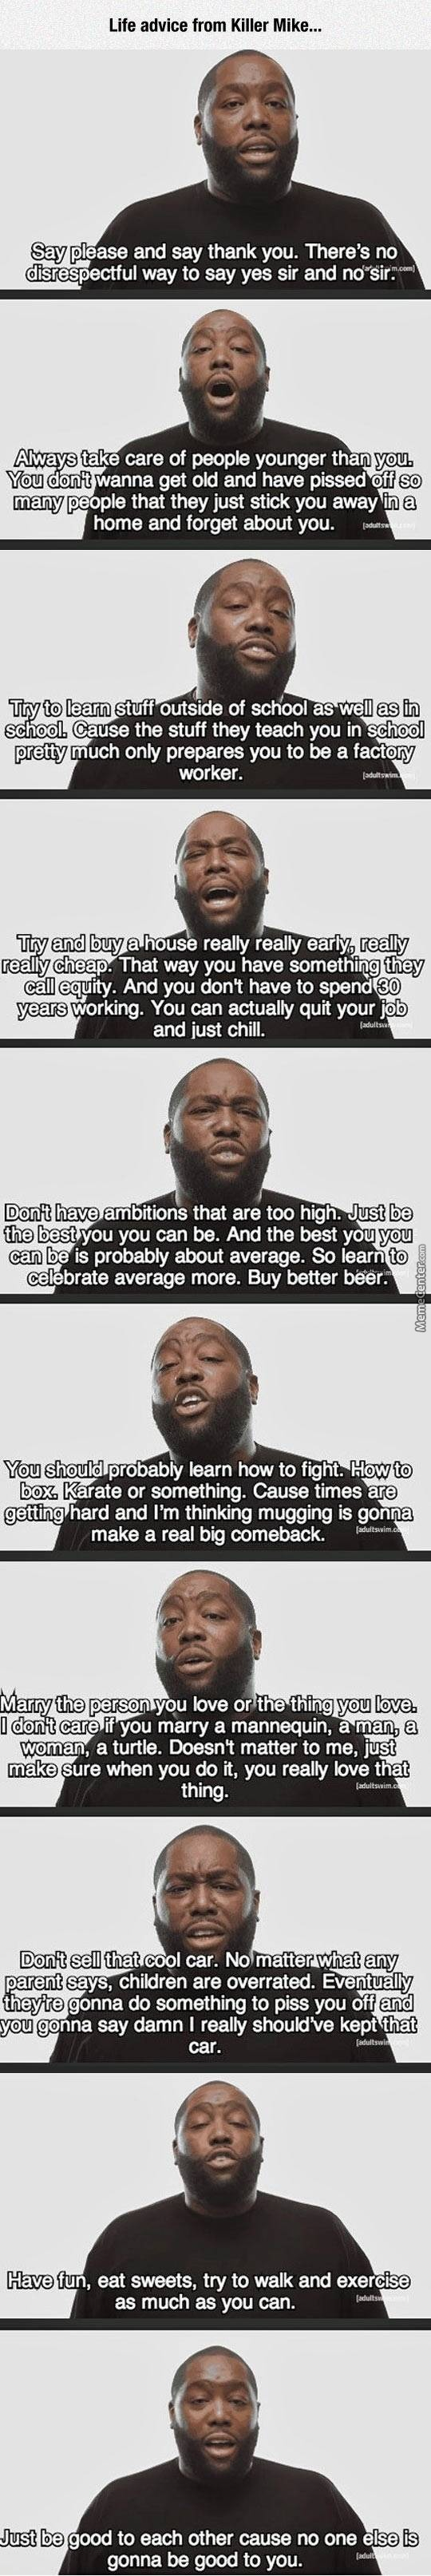 Life Advice From Killer Mike